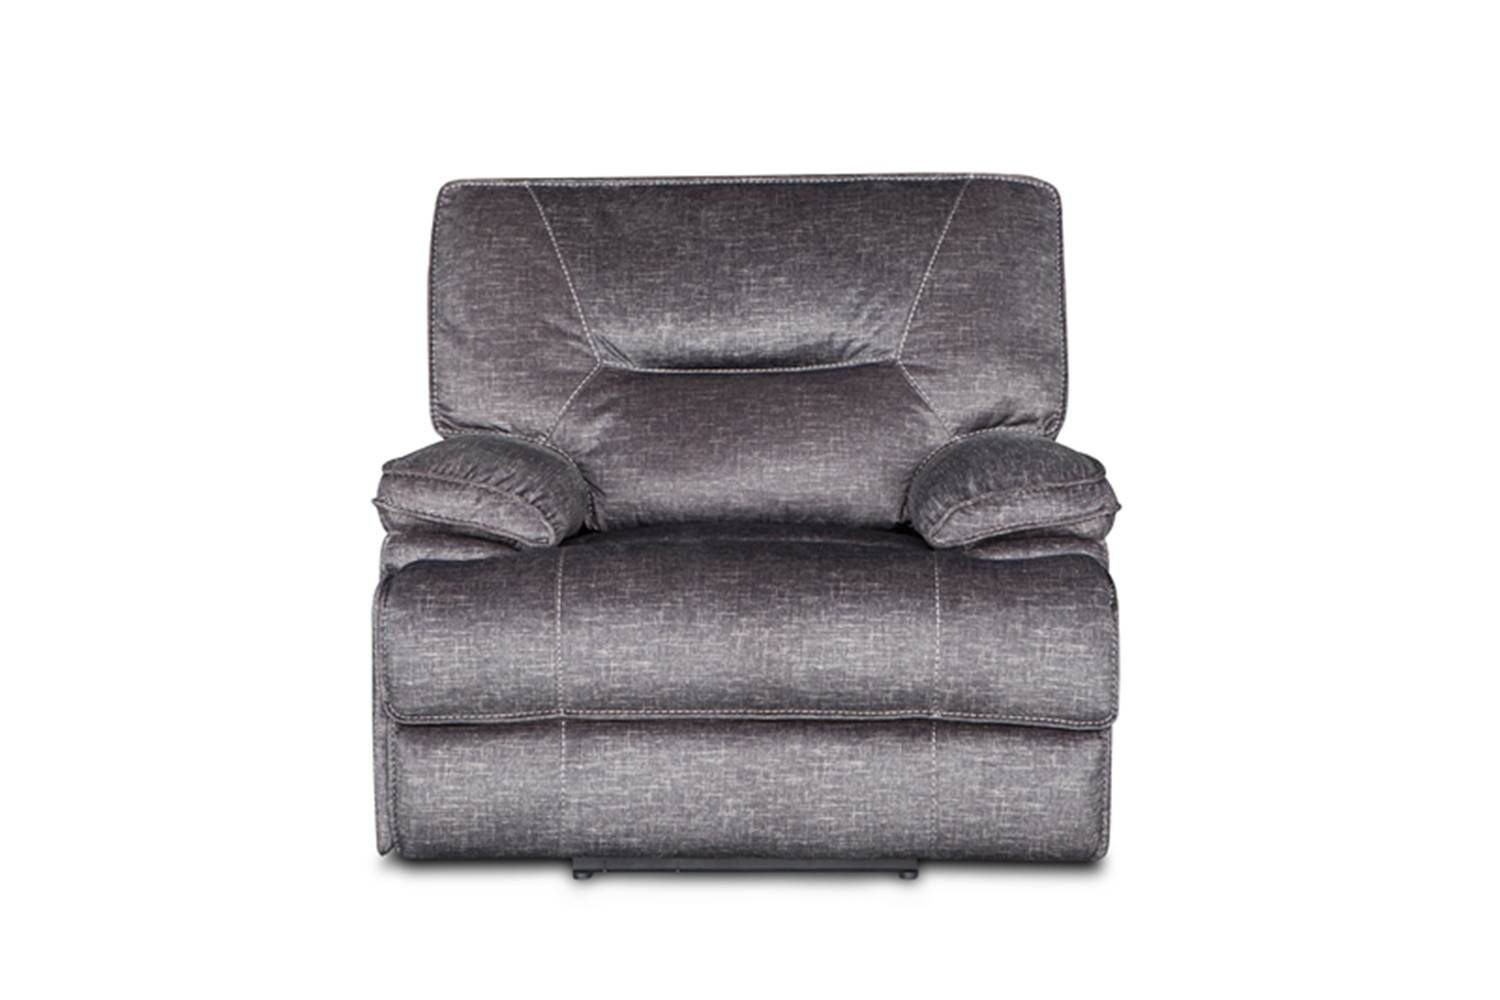 Hot-selling Rolled Up Memory Foam Mattress -